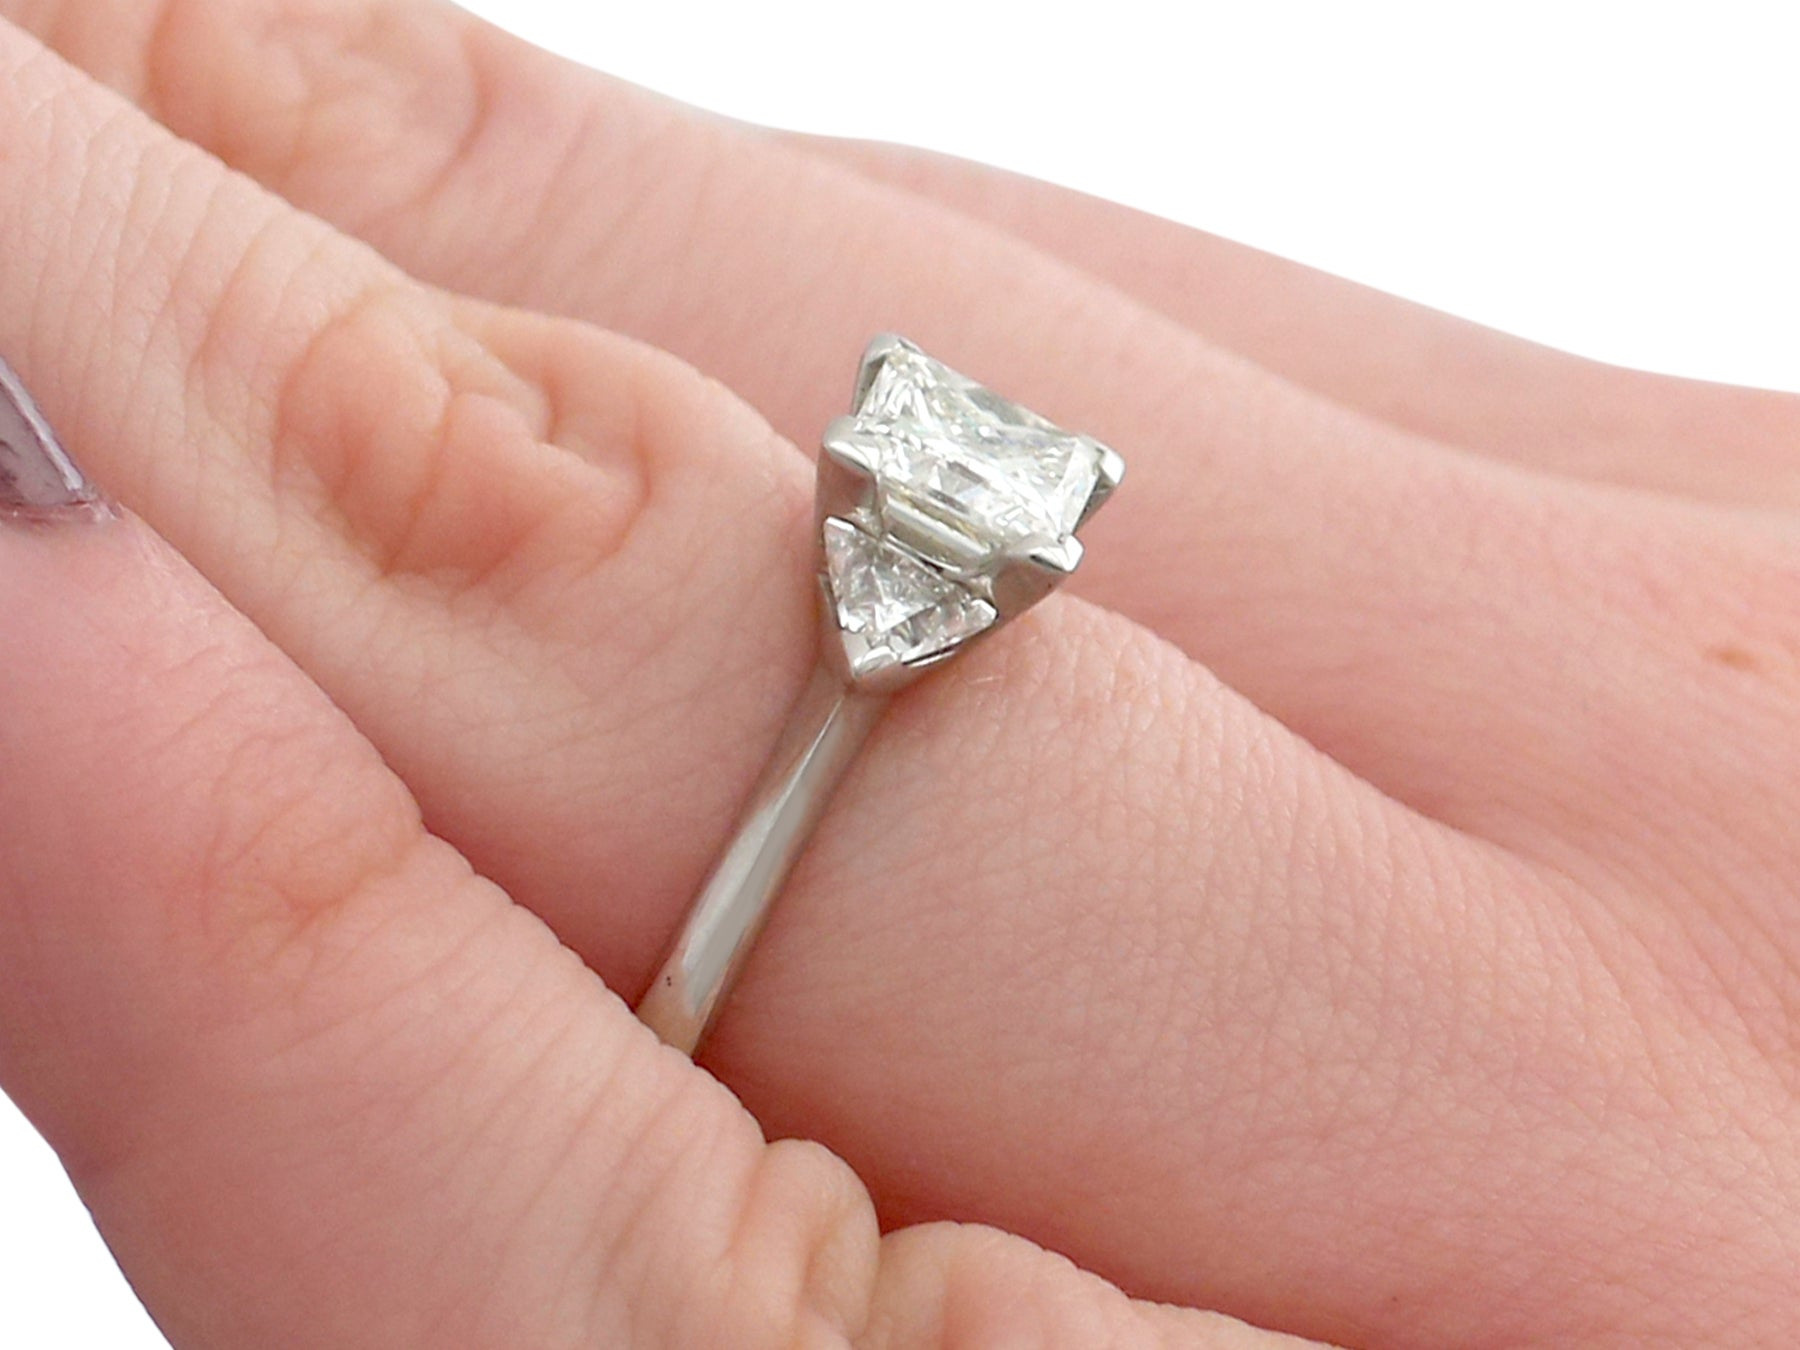 1.87Ct Diamond and Platinum Trilogy Ring - Contemporary 2015 For ...